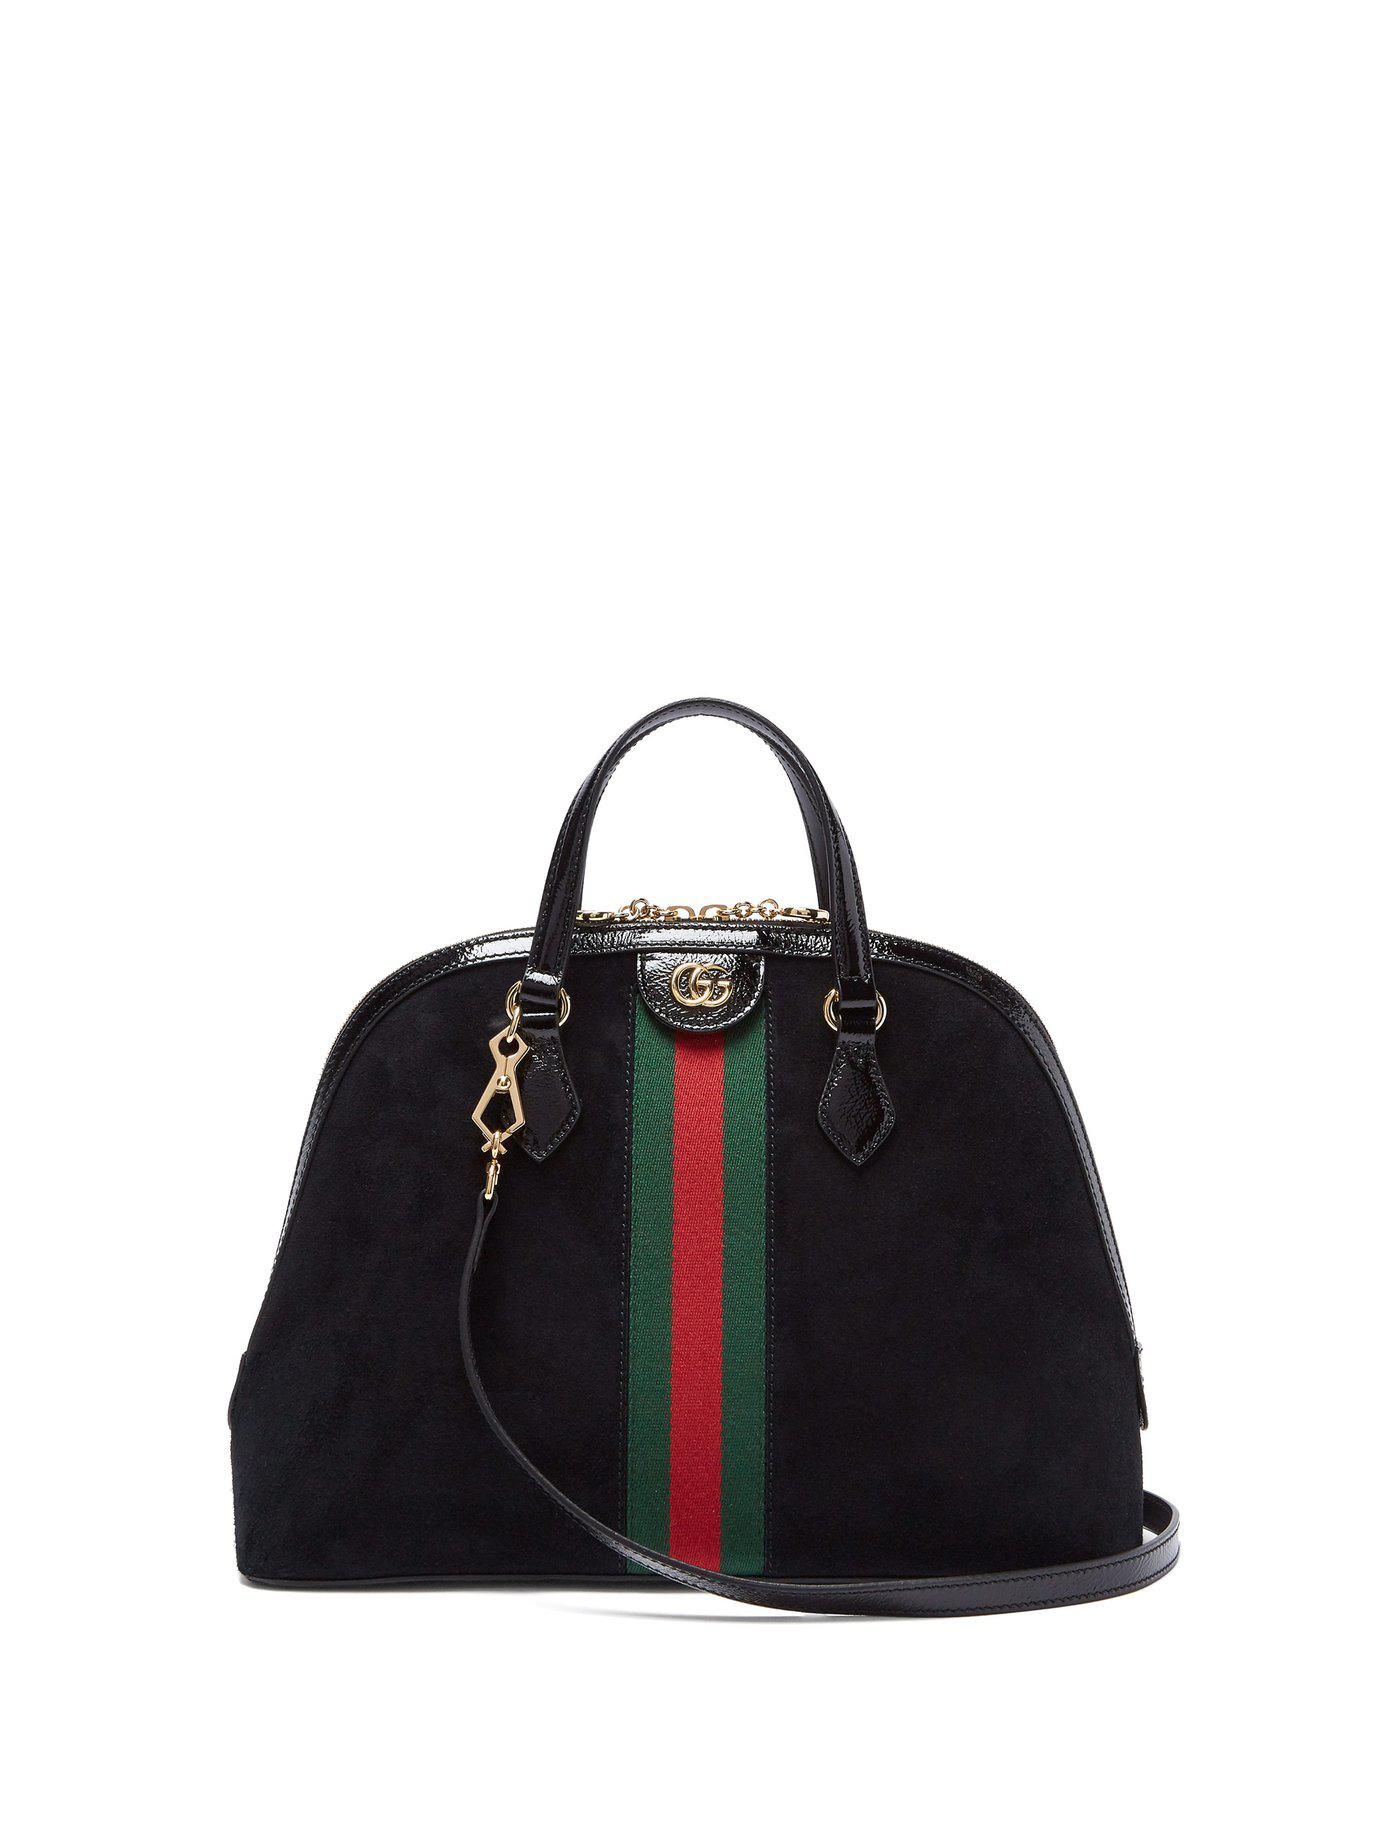 26ea9a01fb0 Gucci Ophidia Gg Suede Tote Bag in Black - Save 6% - Lyst